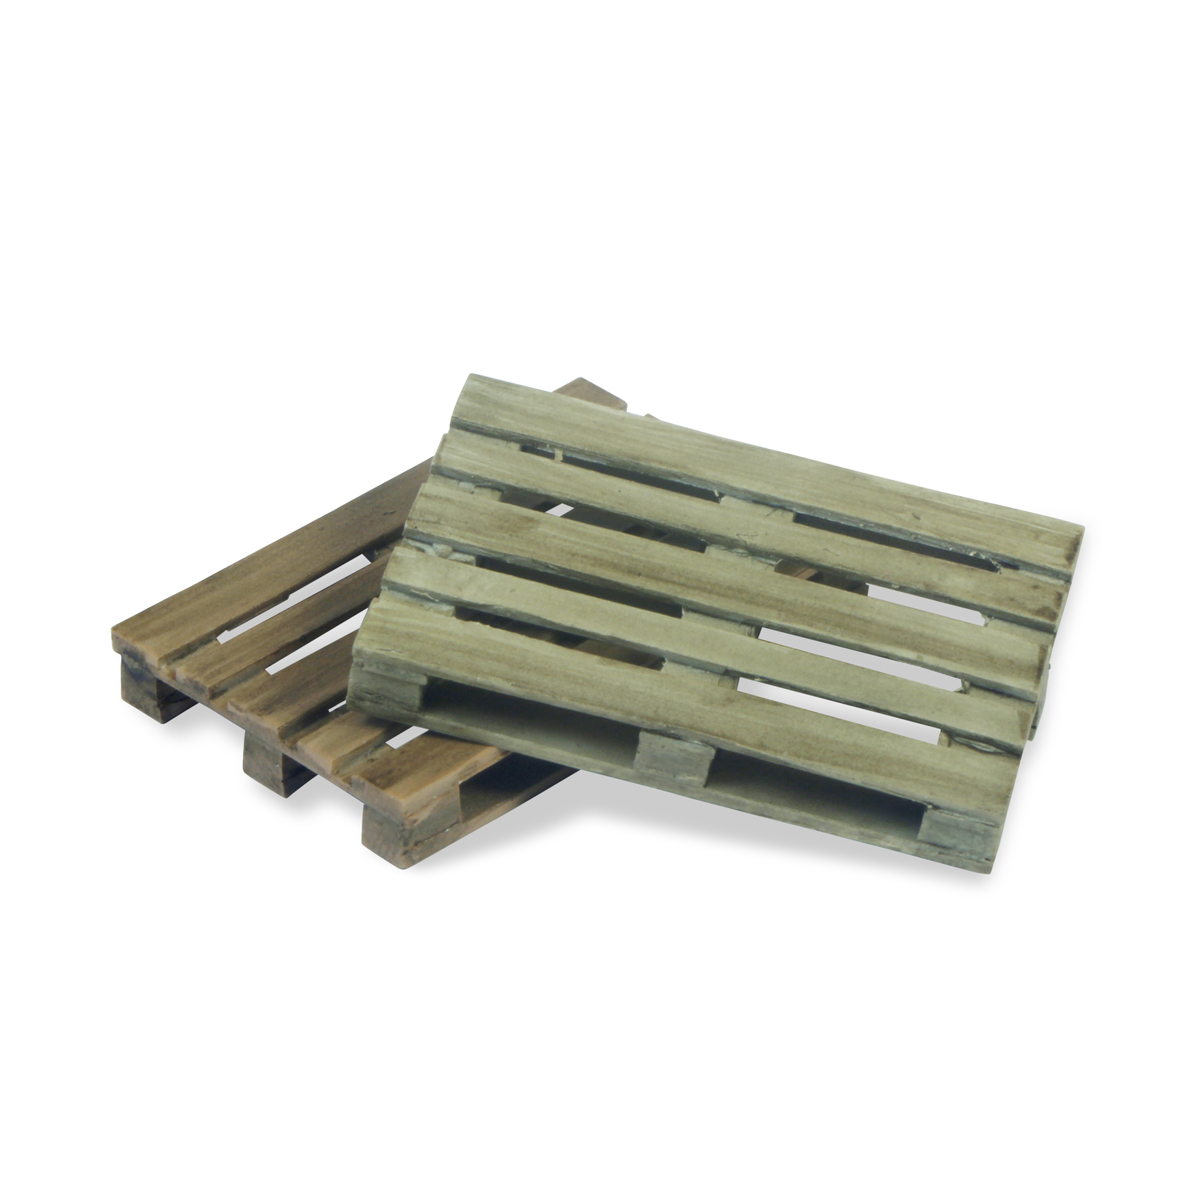 Wooden Pallets (2 pcs.)